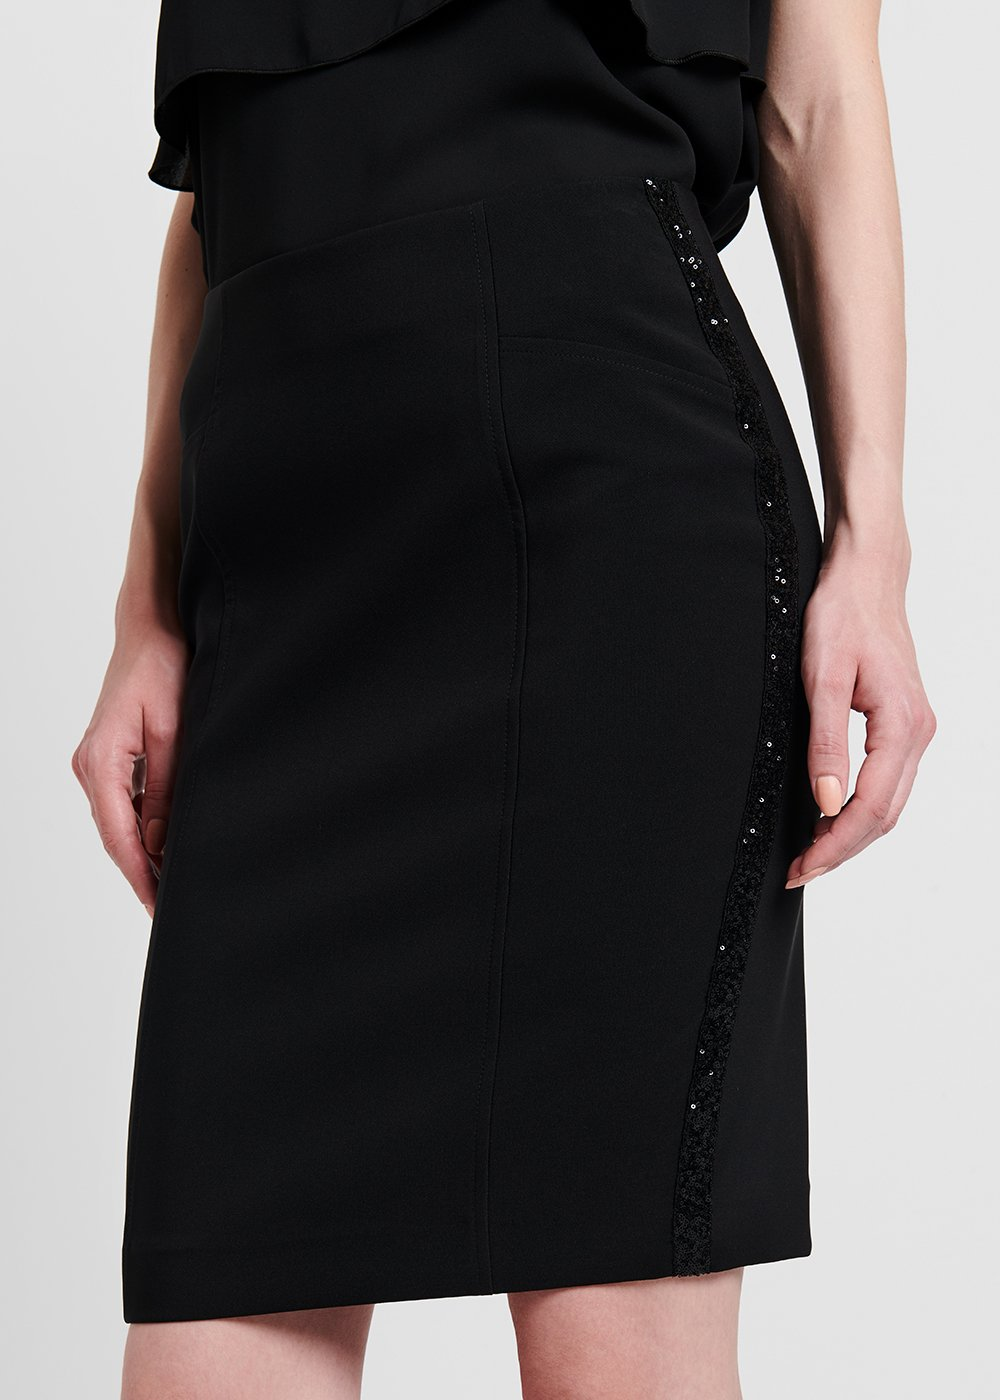 Pencil skirt with side sequined bands - Black - Woman